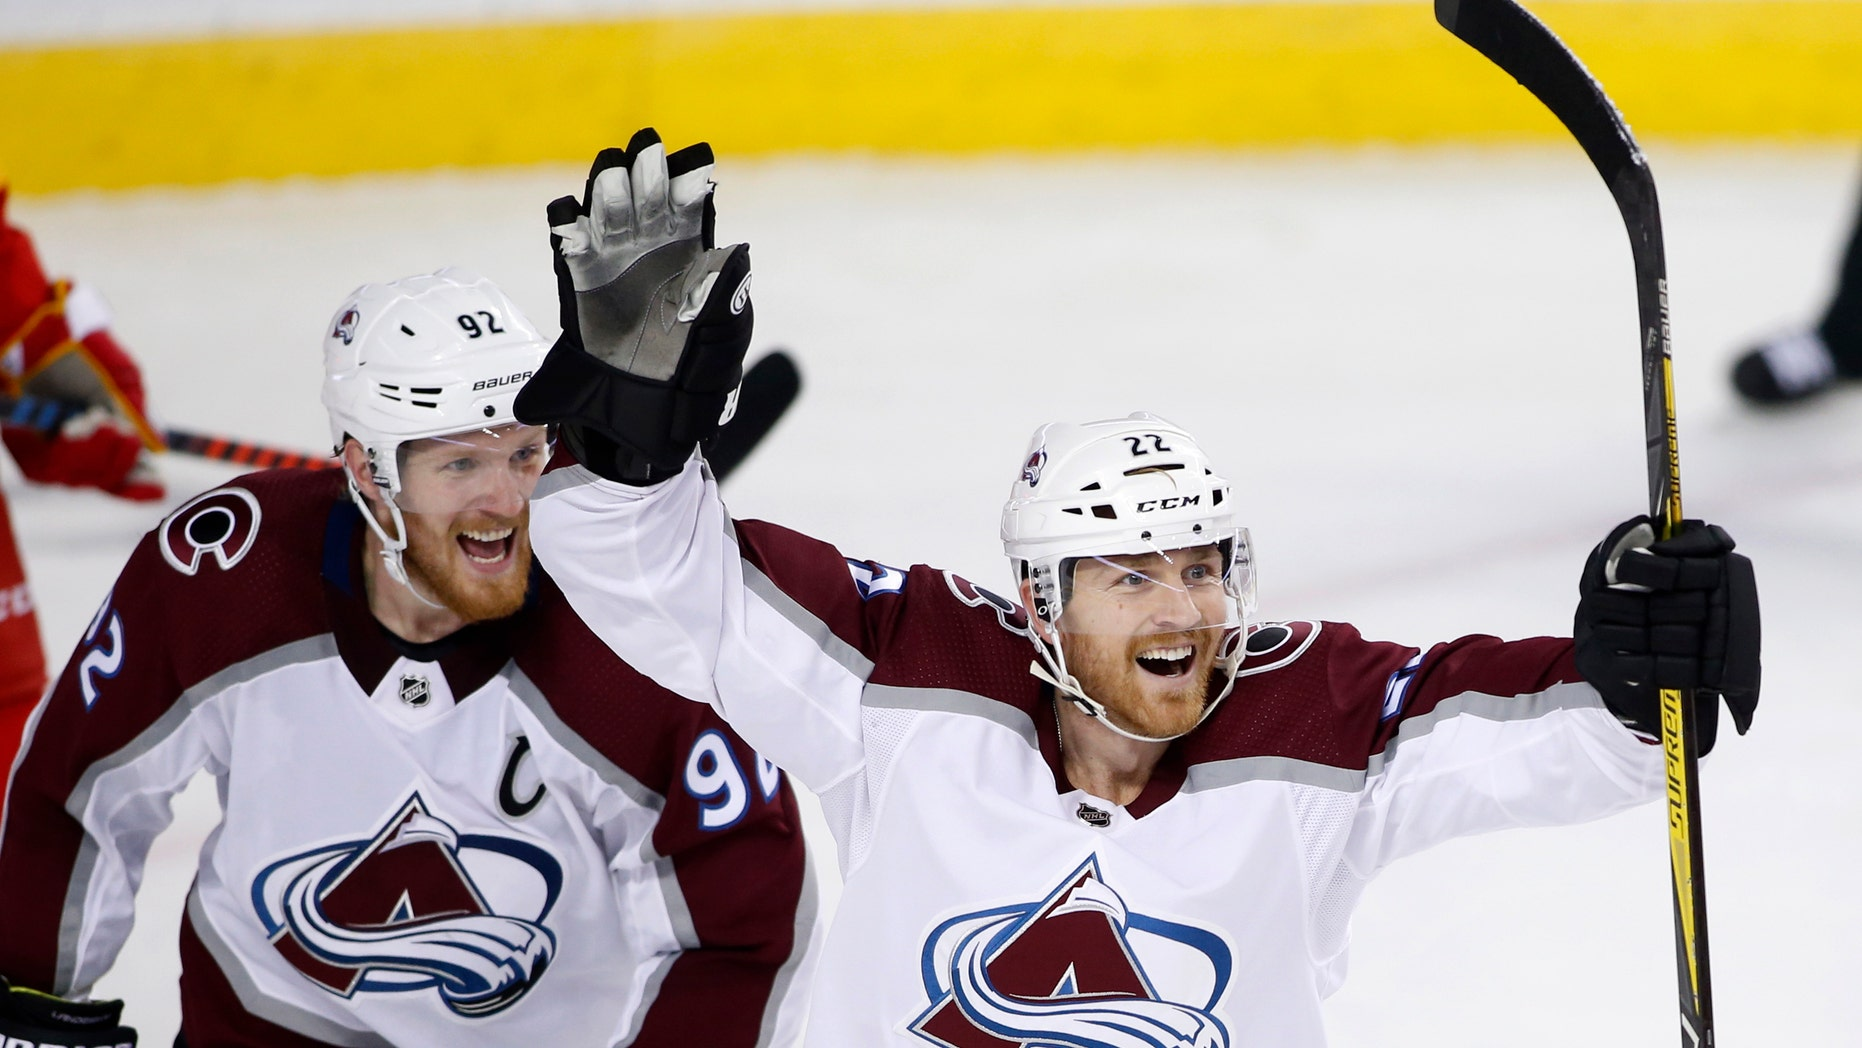 Colorado Avalanche center Colin Wilson (22) celebrates his goal against the Calgary Flames with teammate Gabriel Landeskog (92) during the second period of Game 5 of an NHL hockey first-round playoff series Friday, April 19, 2019, in Calgary, Alberta.